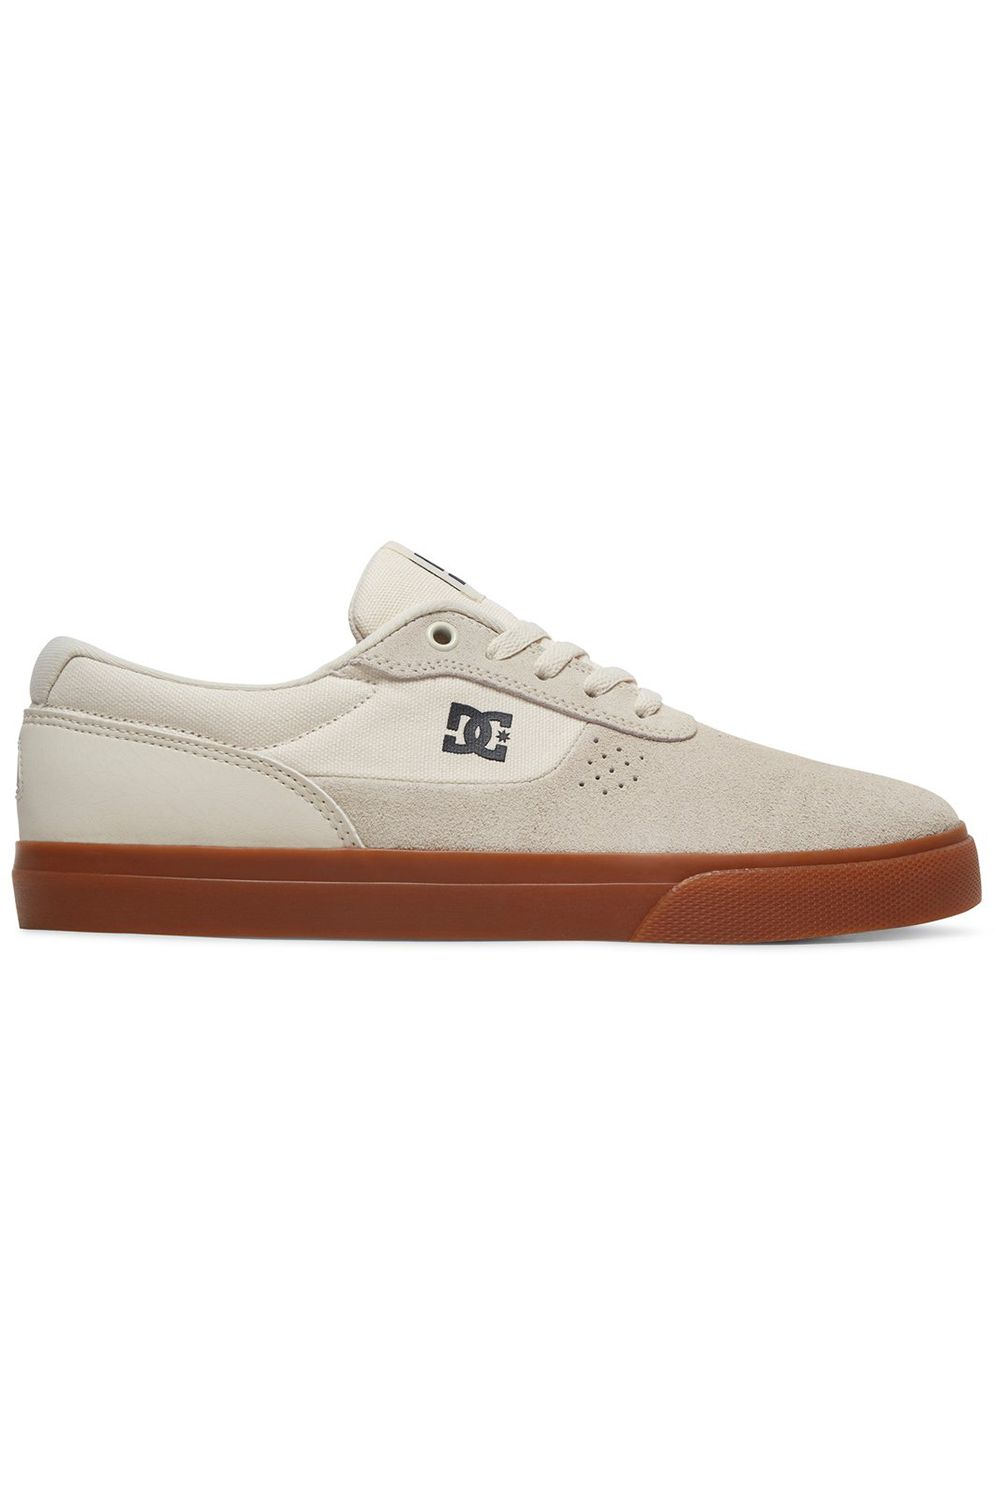 DC Shoes Shoes SWITCH White/White/Gum